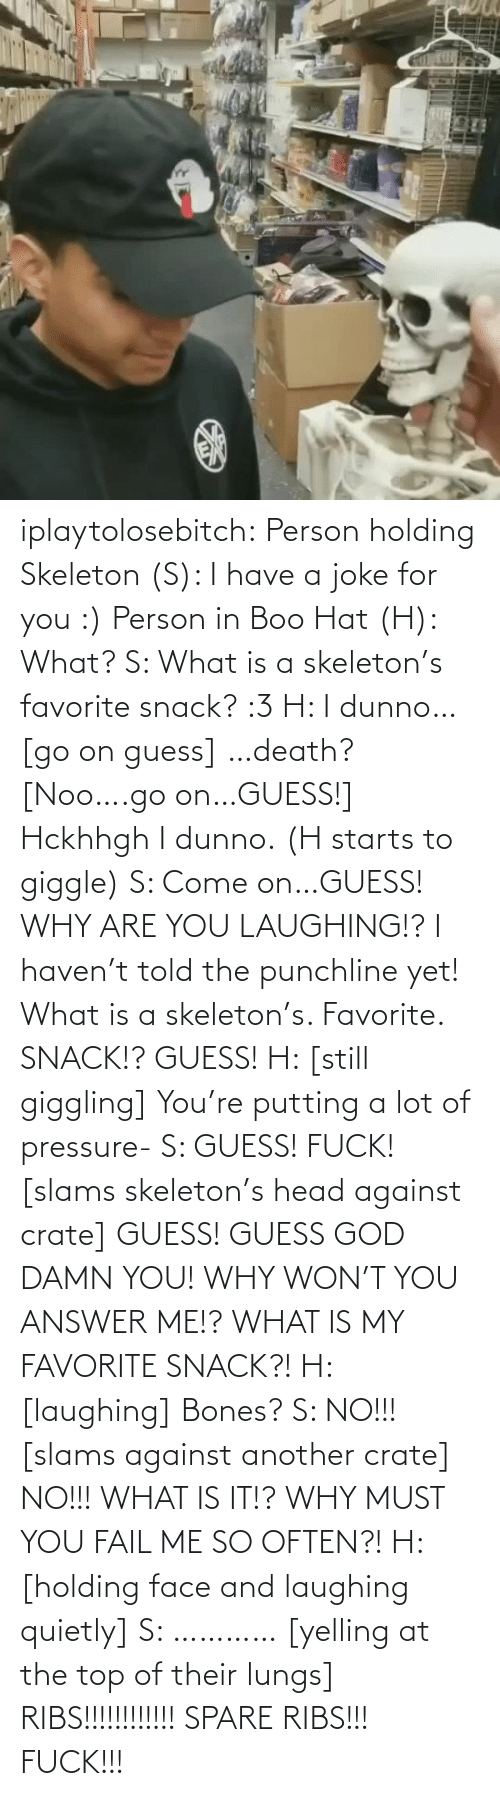 boo: iplaytolosebitch:  Person holding Skeleton (S): I have a joke for you :) Person in Boo Hat (H): What? S: What is a skeleton's favorite snack? :3 H: I dunno… [go on guess] …death? [Noo….go on…GUESS!] Hckhhgh I dunno. (H starts to giggle) S: Come on…GUESS! WHY ARE YOU LAUGHING!? I haven't told the punchline yet! What is a skeleton's. Favorite. SNACK!? GUESS! H: [still giggling] You're putting a lot of pressure- S: GUESS! FUCK! [slams skeleton's head against crate] GUESS! GUESS GOD DAMN YOU! WHY WON'T YOU ANSWER ME!? WHAT IS MY FAVORITE SNACK?! H: [laughing] Bones? S: NO!!! [slams against another crate] NO!!! WHAT IS IT!? WHY MUST YOU FAIL ME SO OFTEN?! H: [holding face and laughing quietly] S: ………… [yelling at the top of their lungs] RIBS!!!!!!!!!!!! SPARE RIBS!!! FUCK!!!